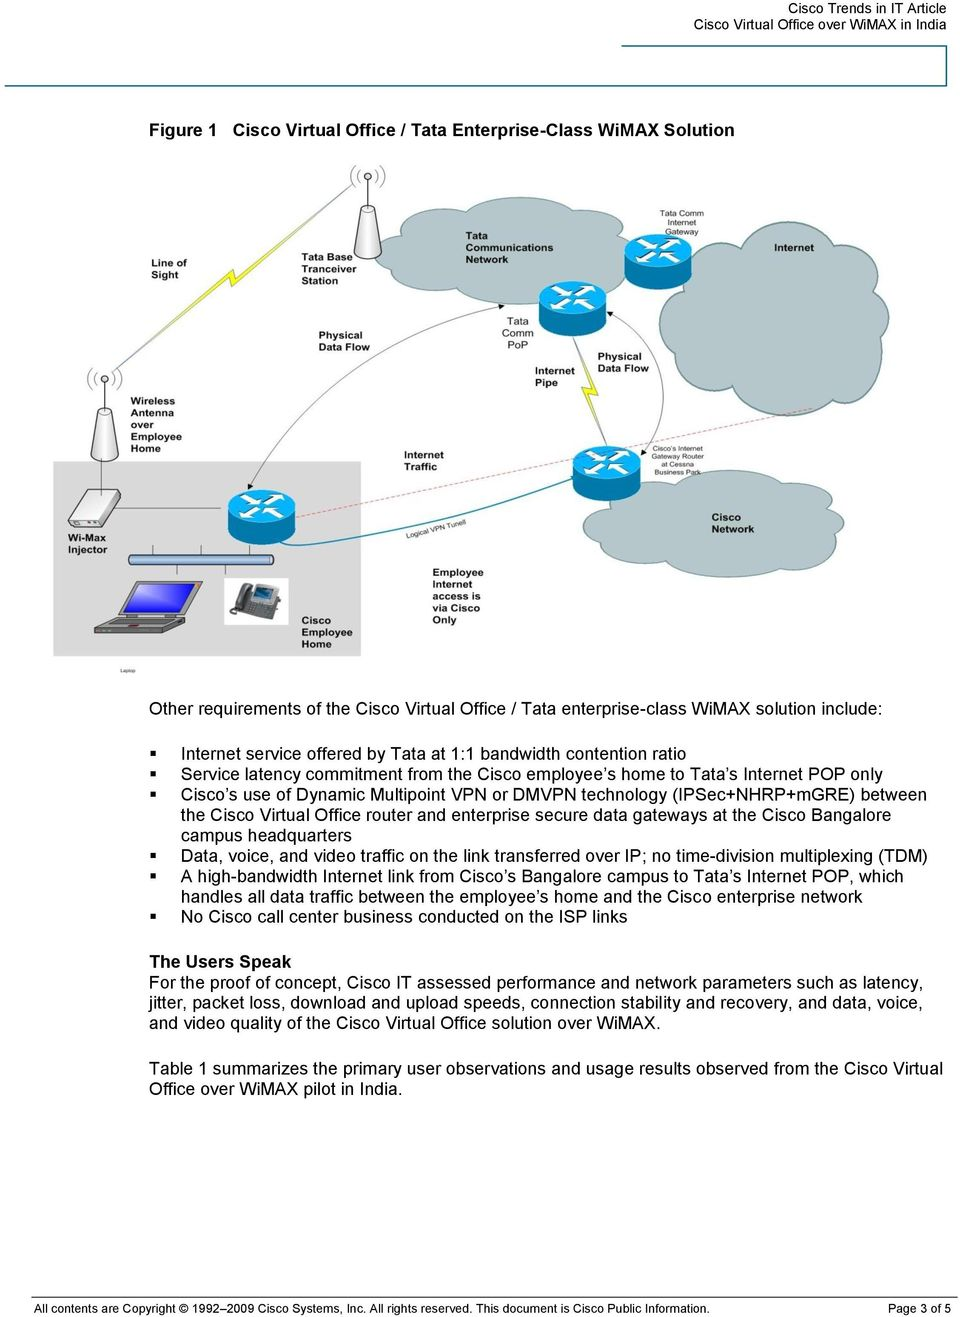 between the Cisco Virtual Office router and enterprise secure data gateways at the Cisco Bangalore campus headquarters Data, voice, and video traffic on the link transferred over IP; no time-division